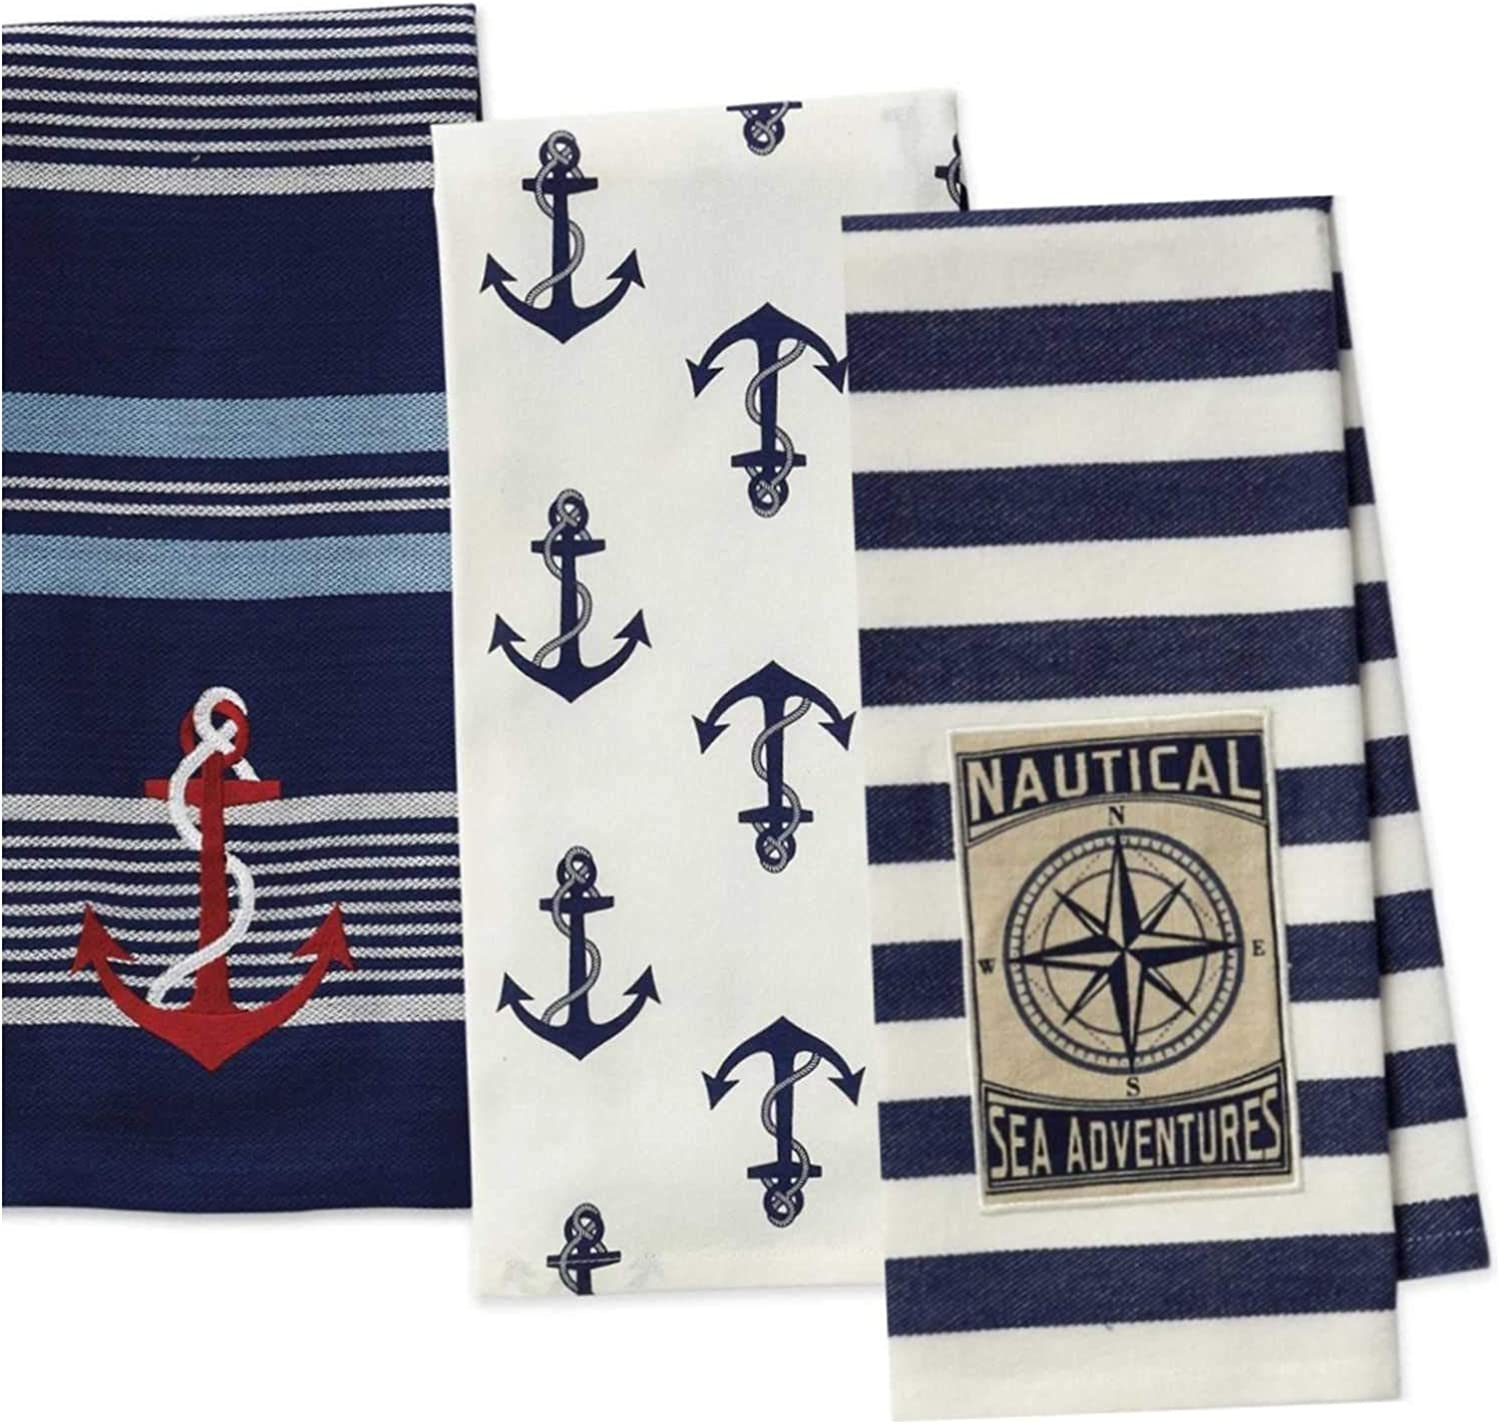 3 Nautical Anchor Themed Decorative Cotton Kitchen Towels with Navy, Red, White, Blue Print | 1 Embroidered and 2 Printed Towel Set for Dish and Hand Drying